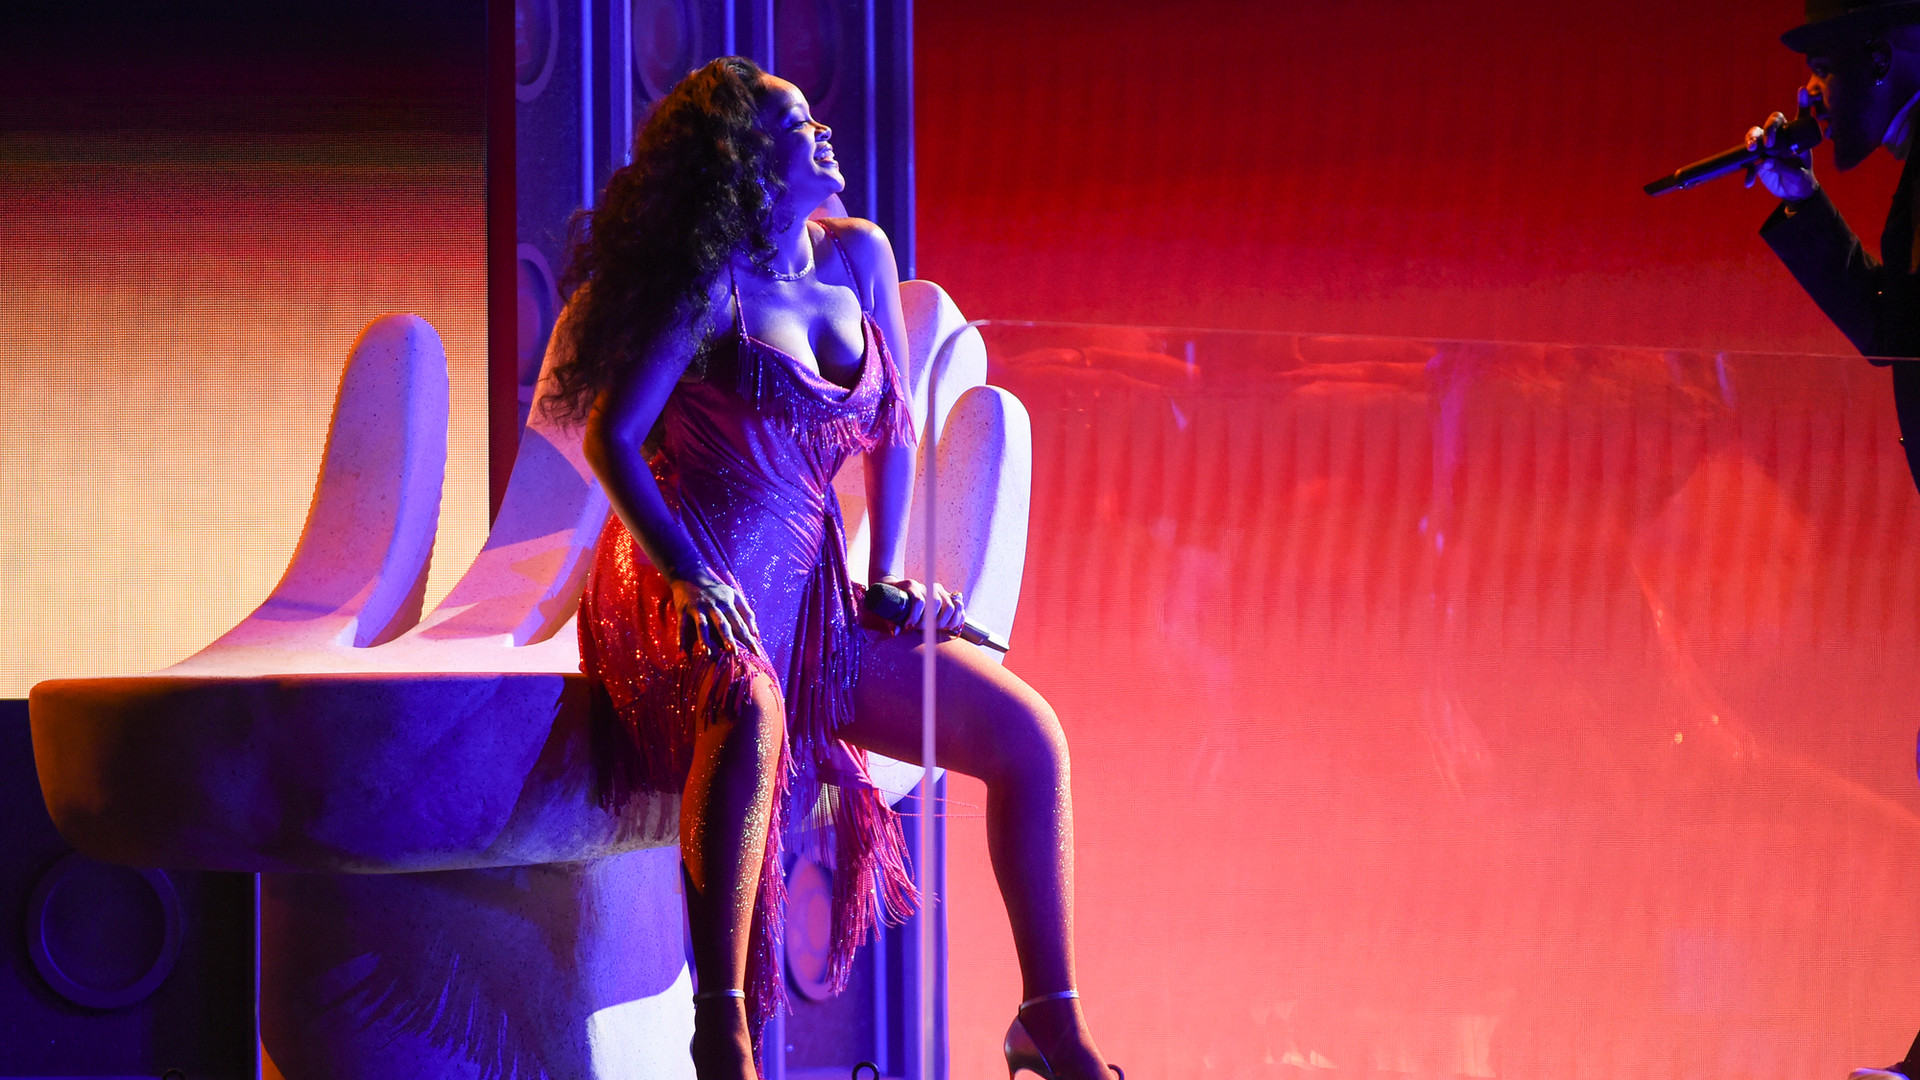 'wild thoughts' grammy's performance